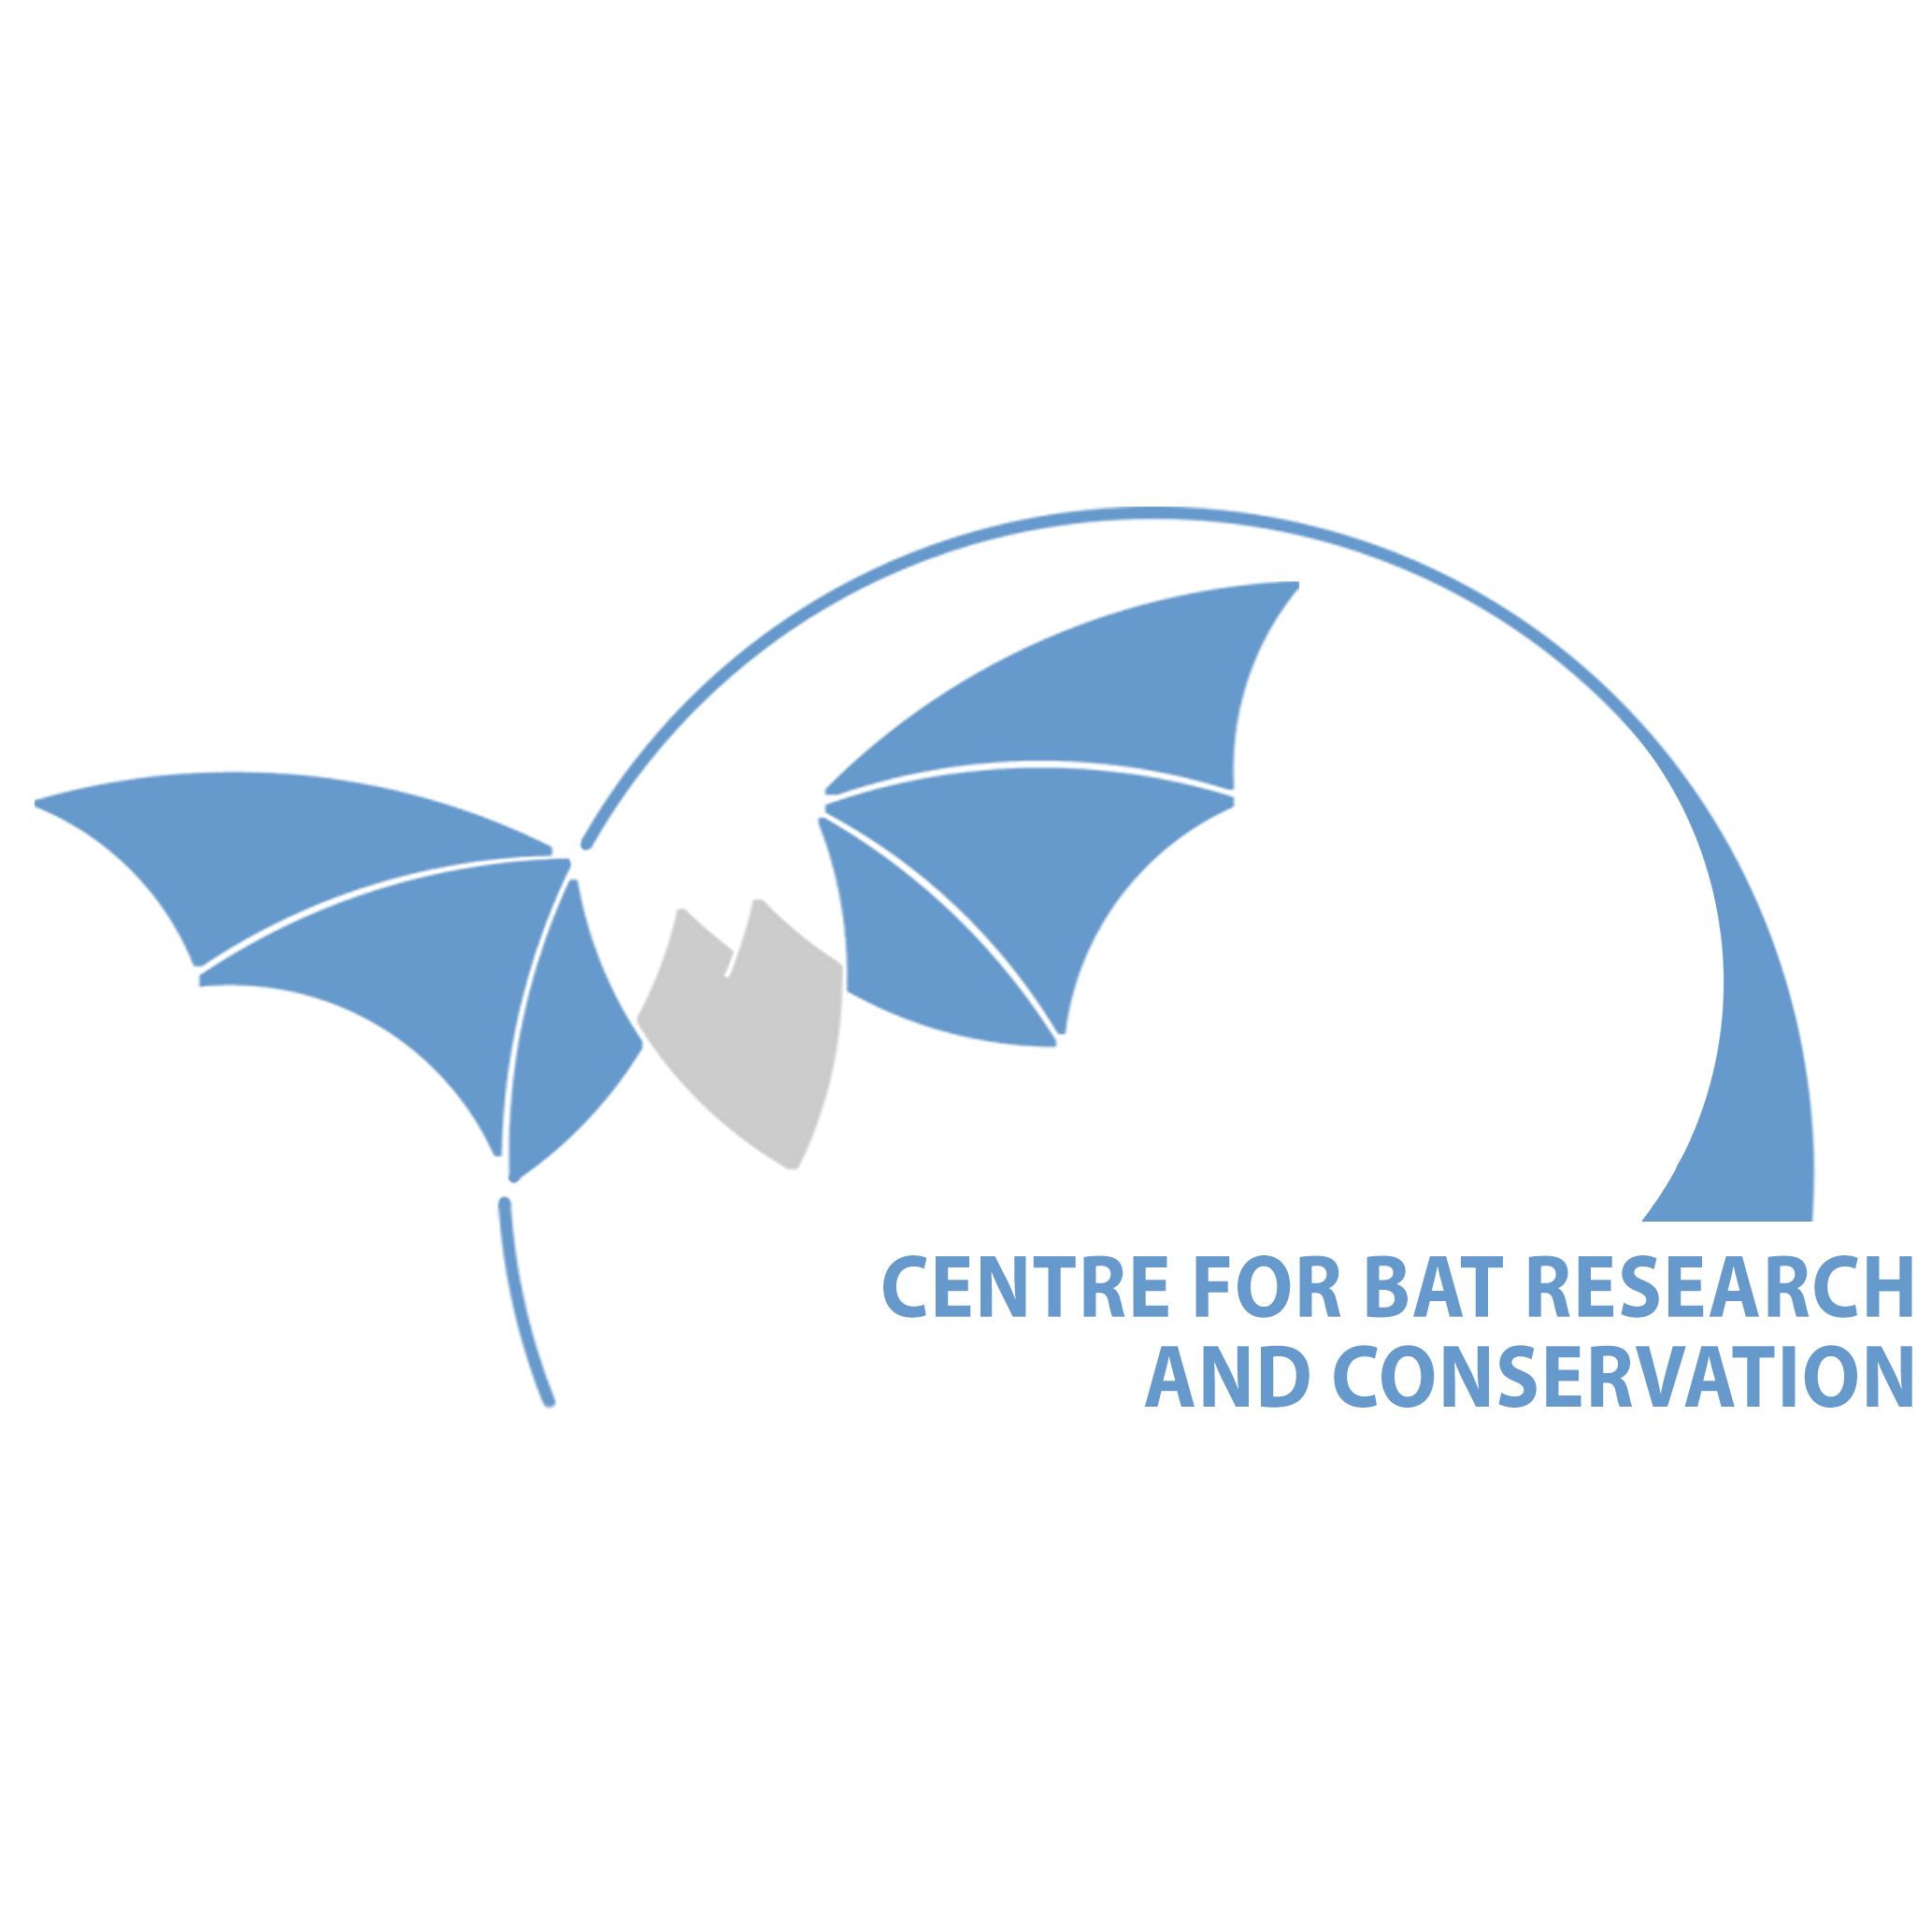 Centre for Bat Research and Conservation, Romania